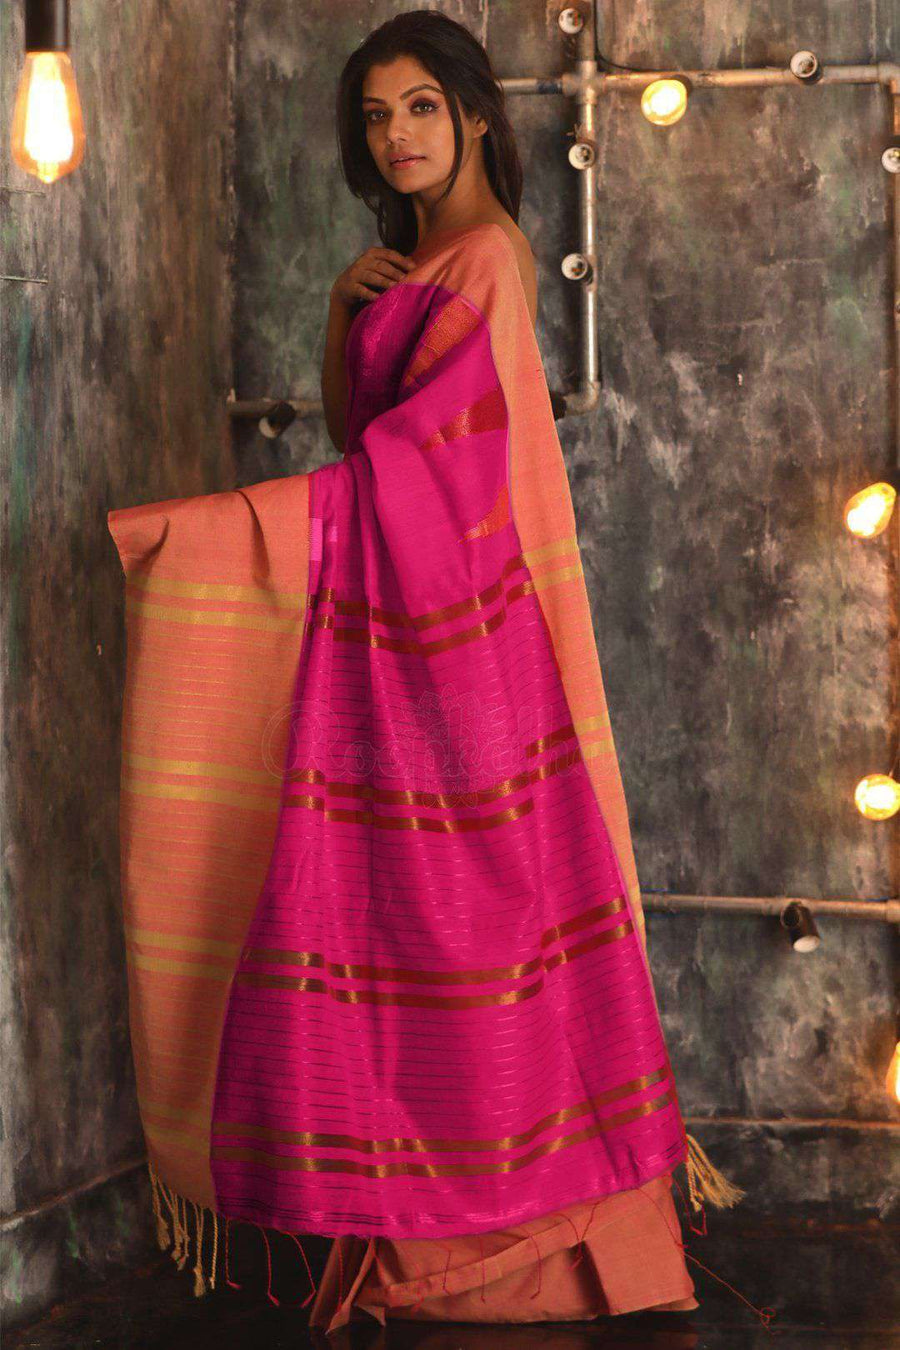 Fuchsia Blended Cotton Saree With Broad Border Akasha Roopkatha - A Story of Art